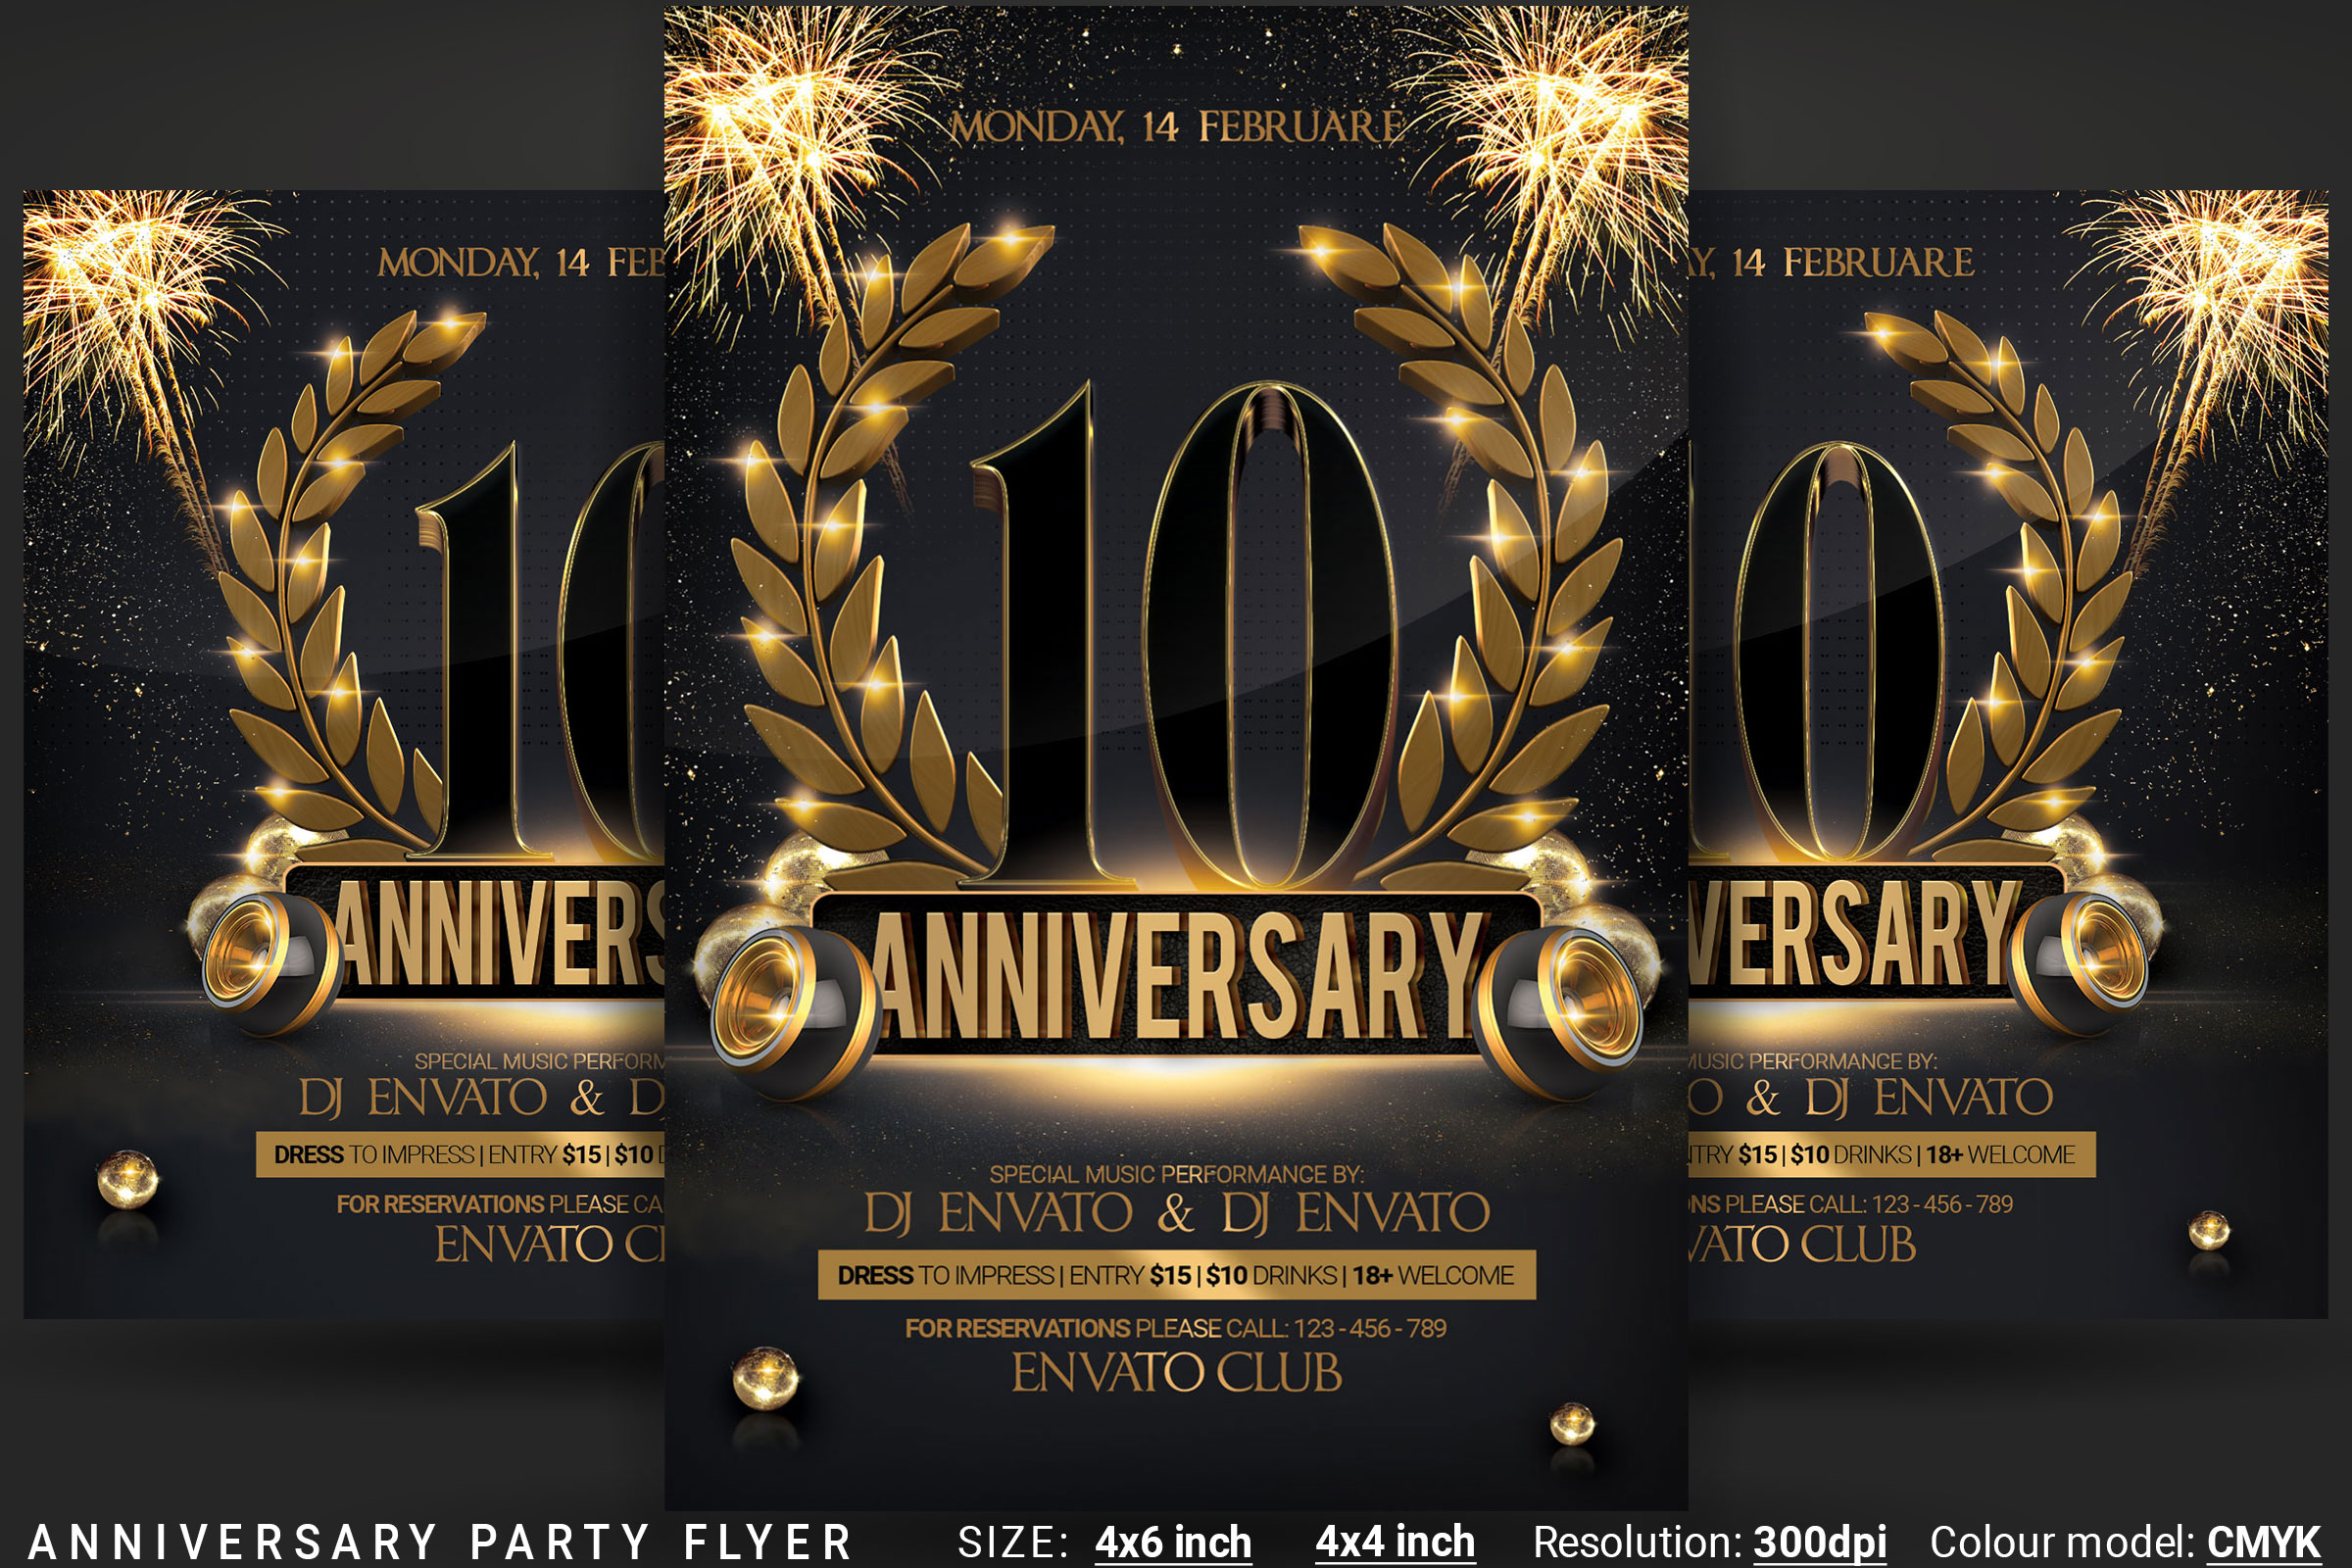 Anniversary Party Flyer example image 1